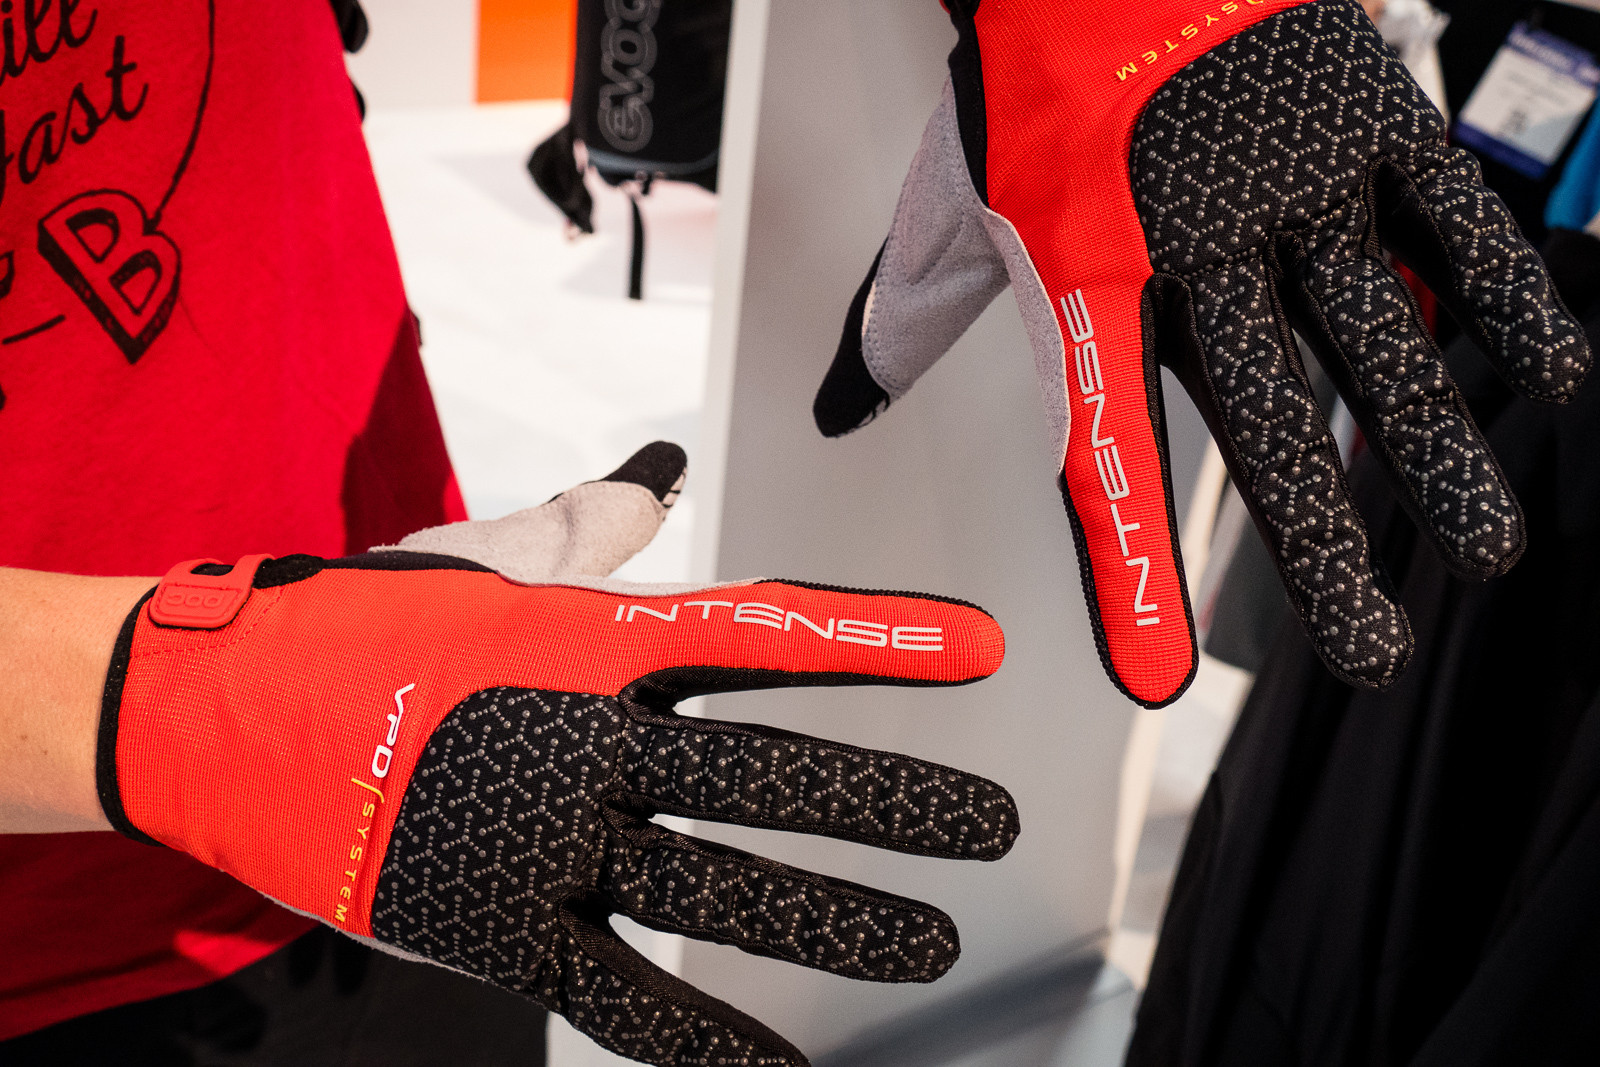 POC Index DH Gloves - 2016 Protective Gear and Apparel at Interbike - Mountain Biking Pictures - Vital MTB